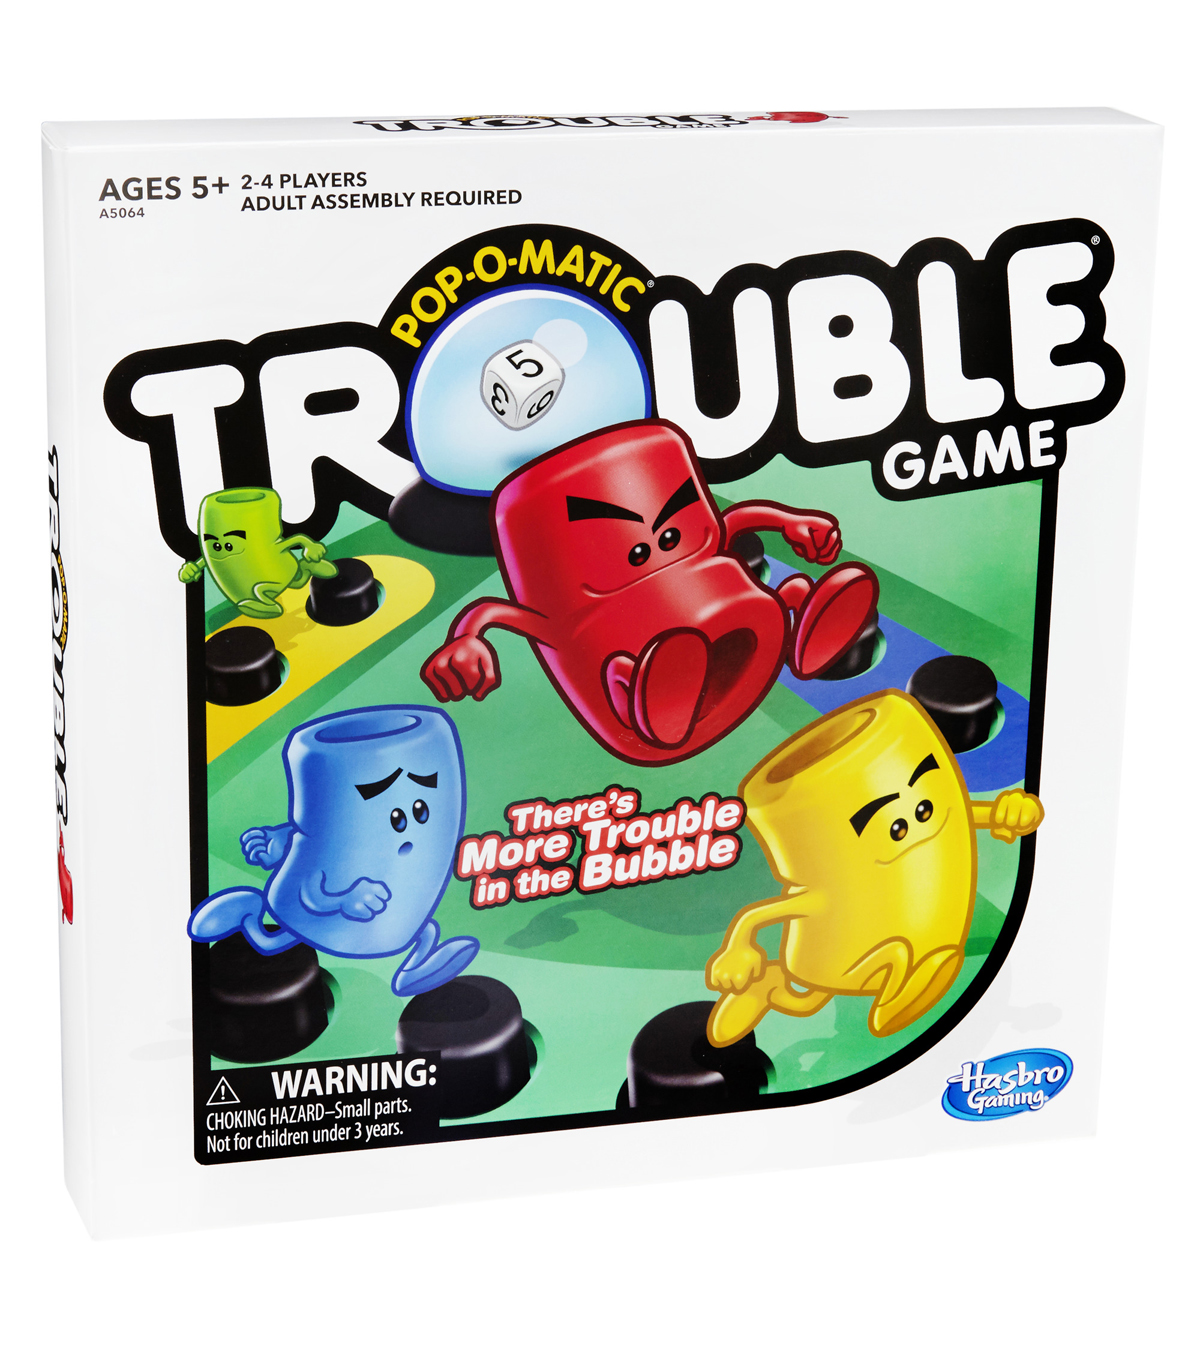 Hasbro Gaming Pop-O-Matic Trouble Game Kit